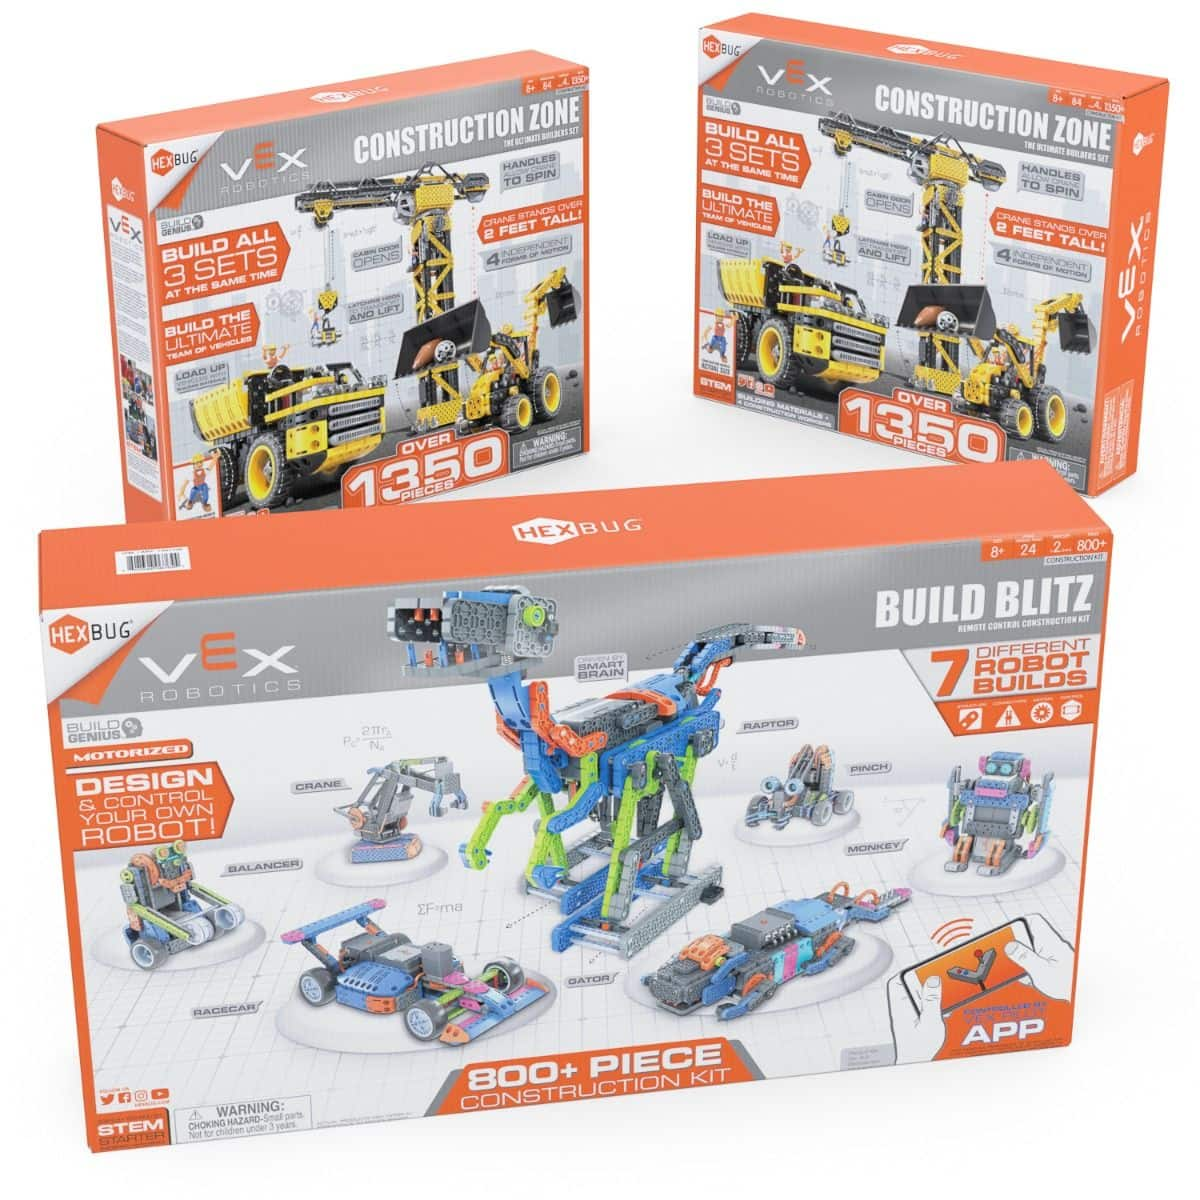 Hexbug Hexmas deals - stem zone bundle